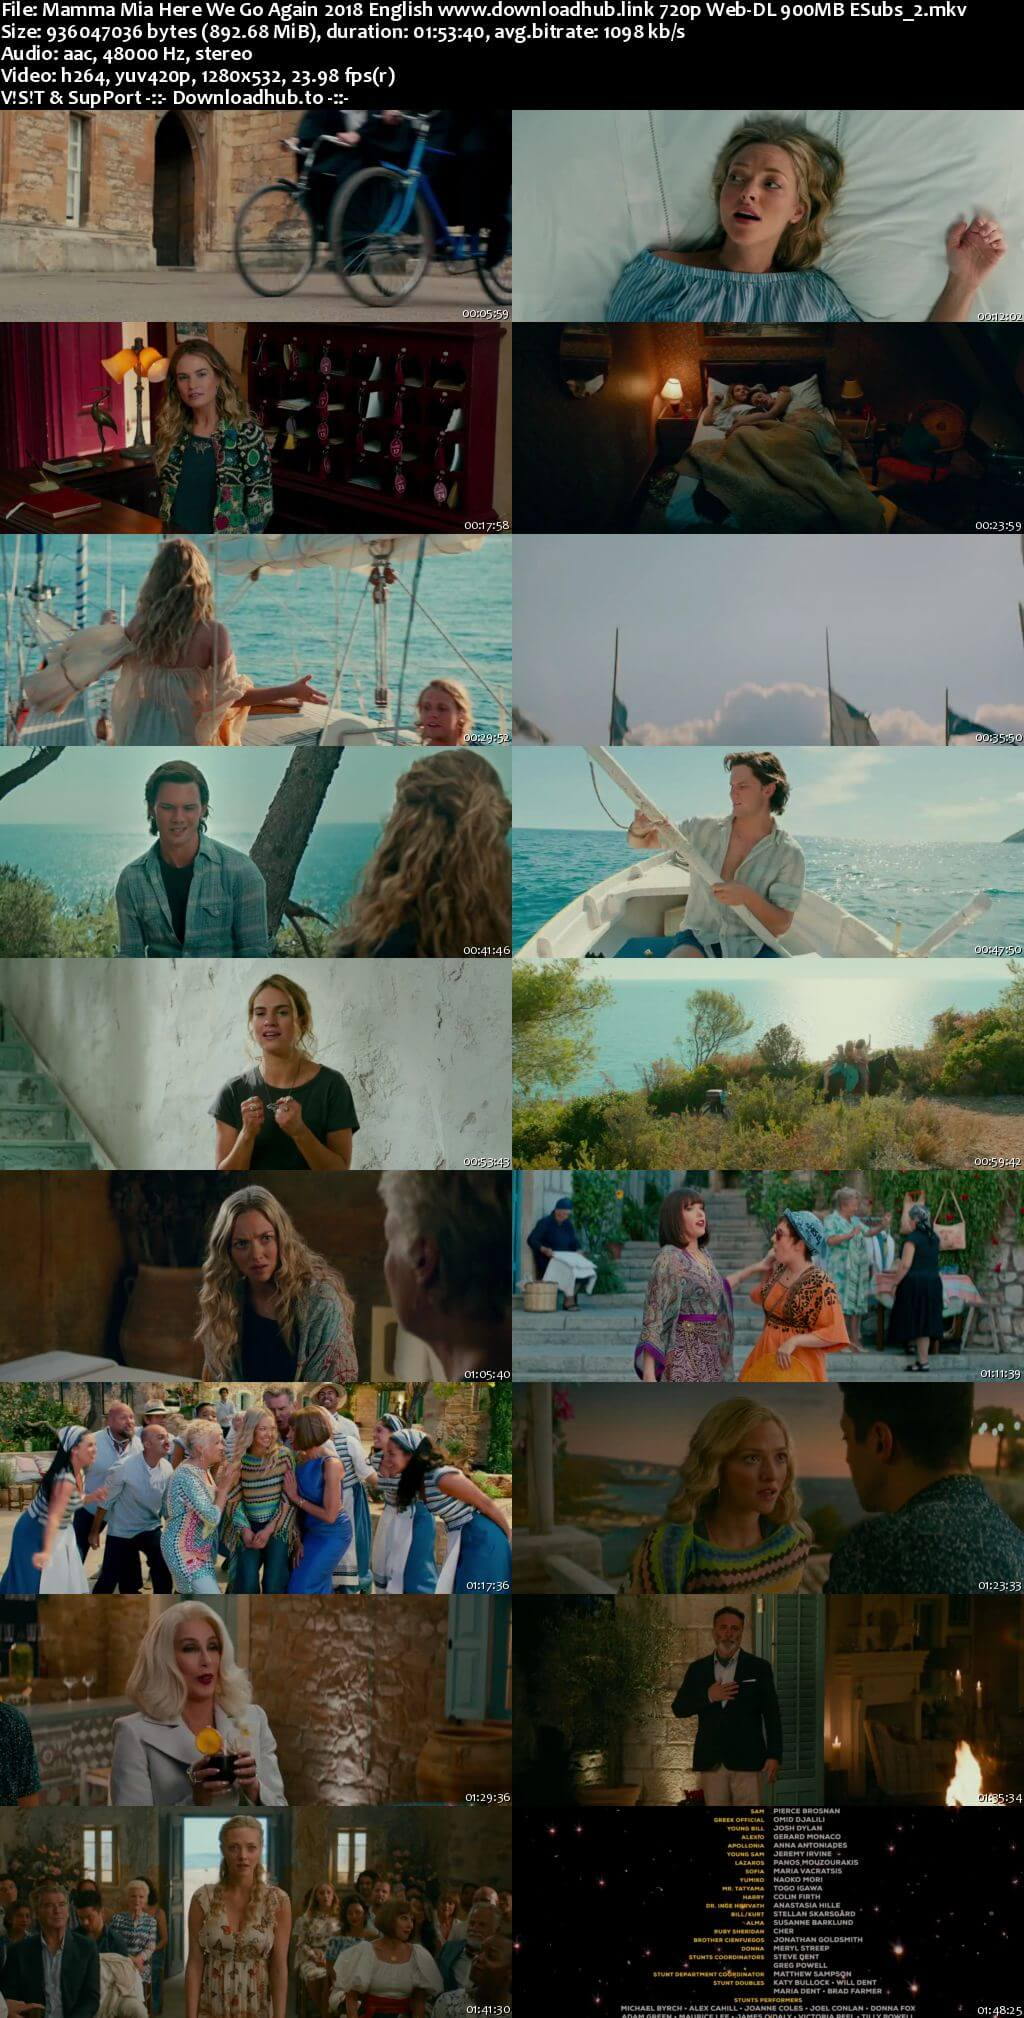 Mamma Mia Here We Go Again 2018 English 720p Web-DL 900MB ESubs